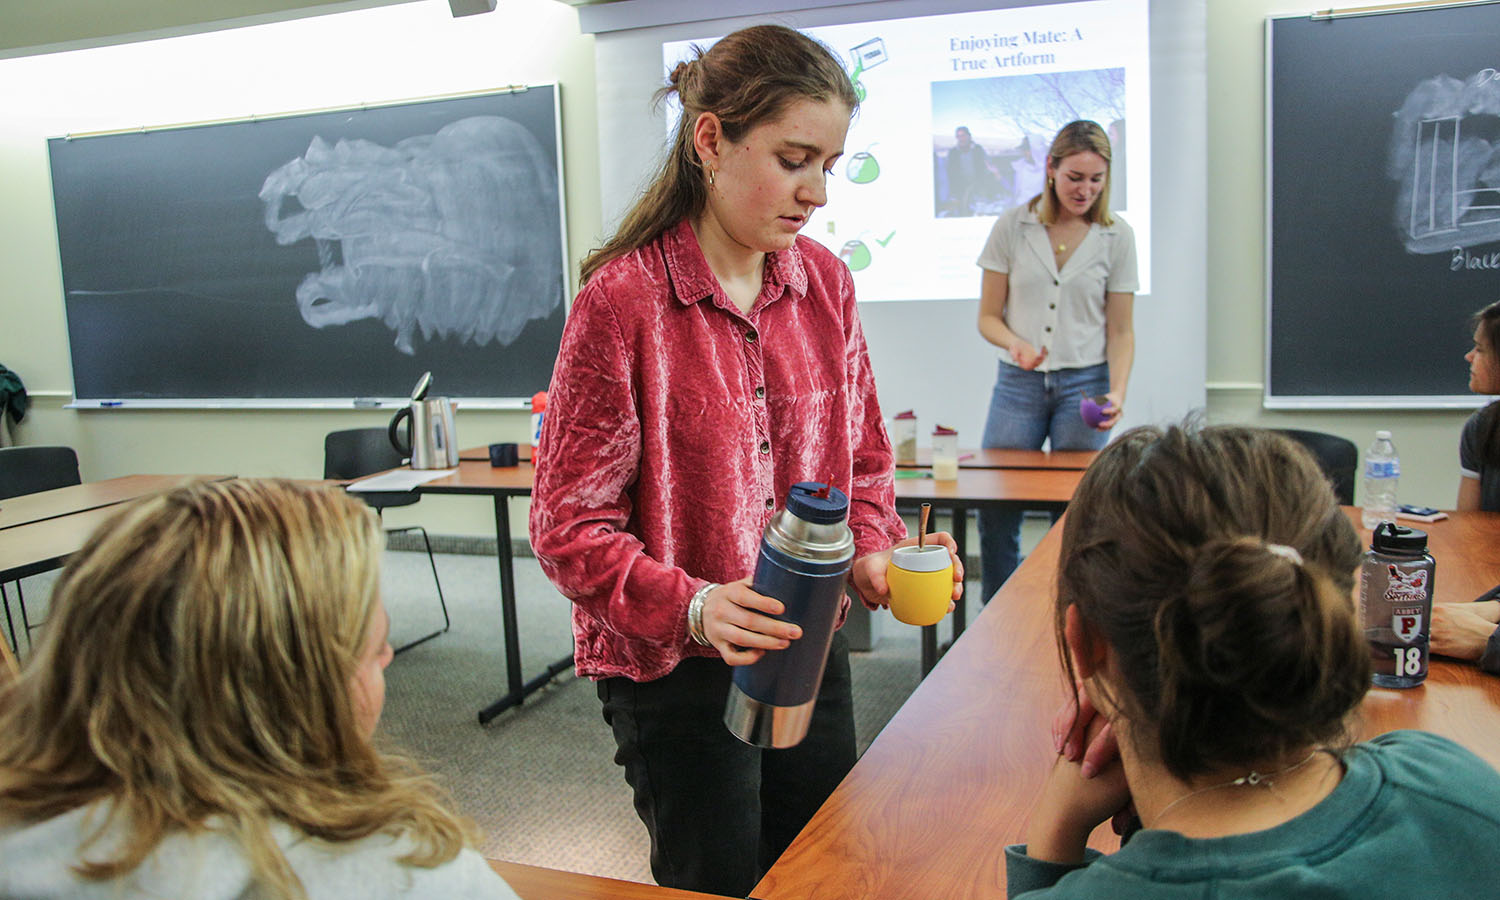 Audrey Platt '21 and Katherine Howard '19 give a presentation on Argentinian mate tea during the Global Cafe. Mate tea is a traditional South American infused drink.